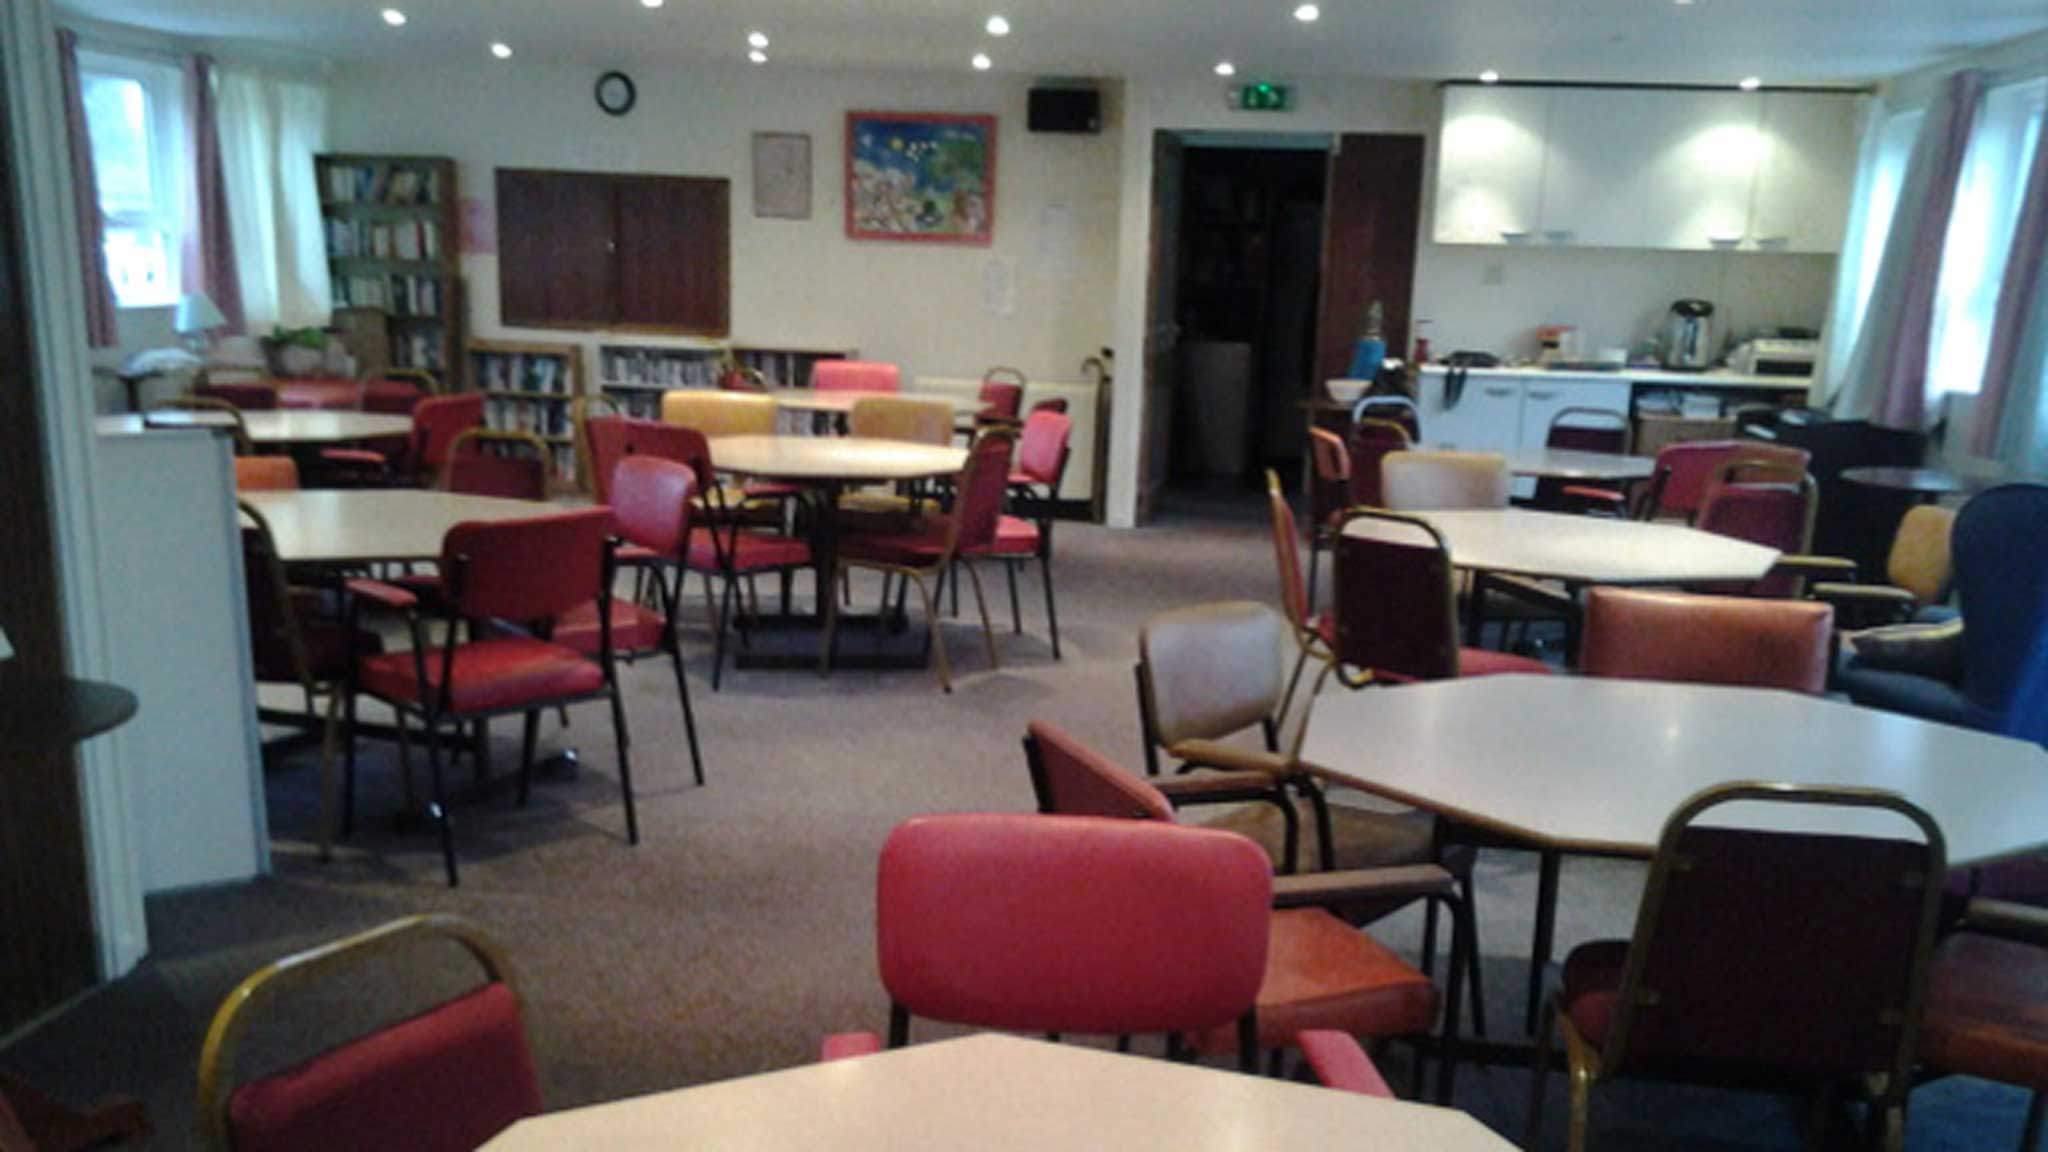 luncheon-club-for-the-elderly-in-wellington-somerset